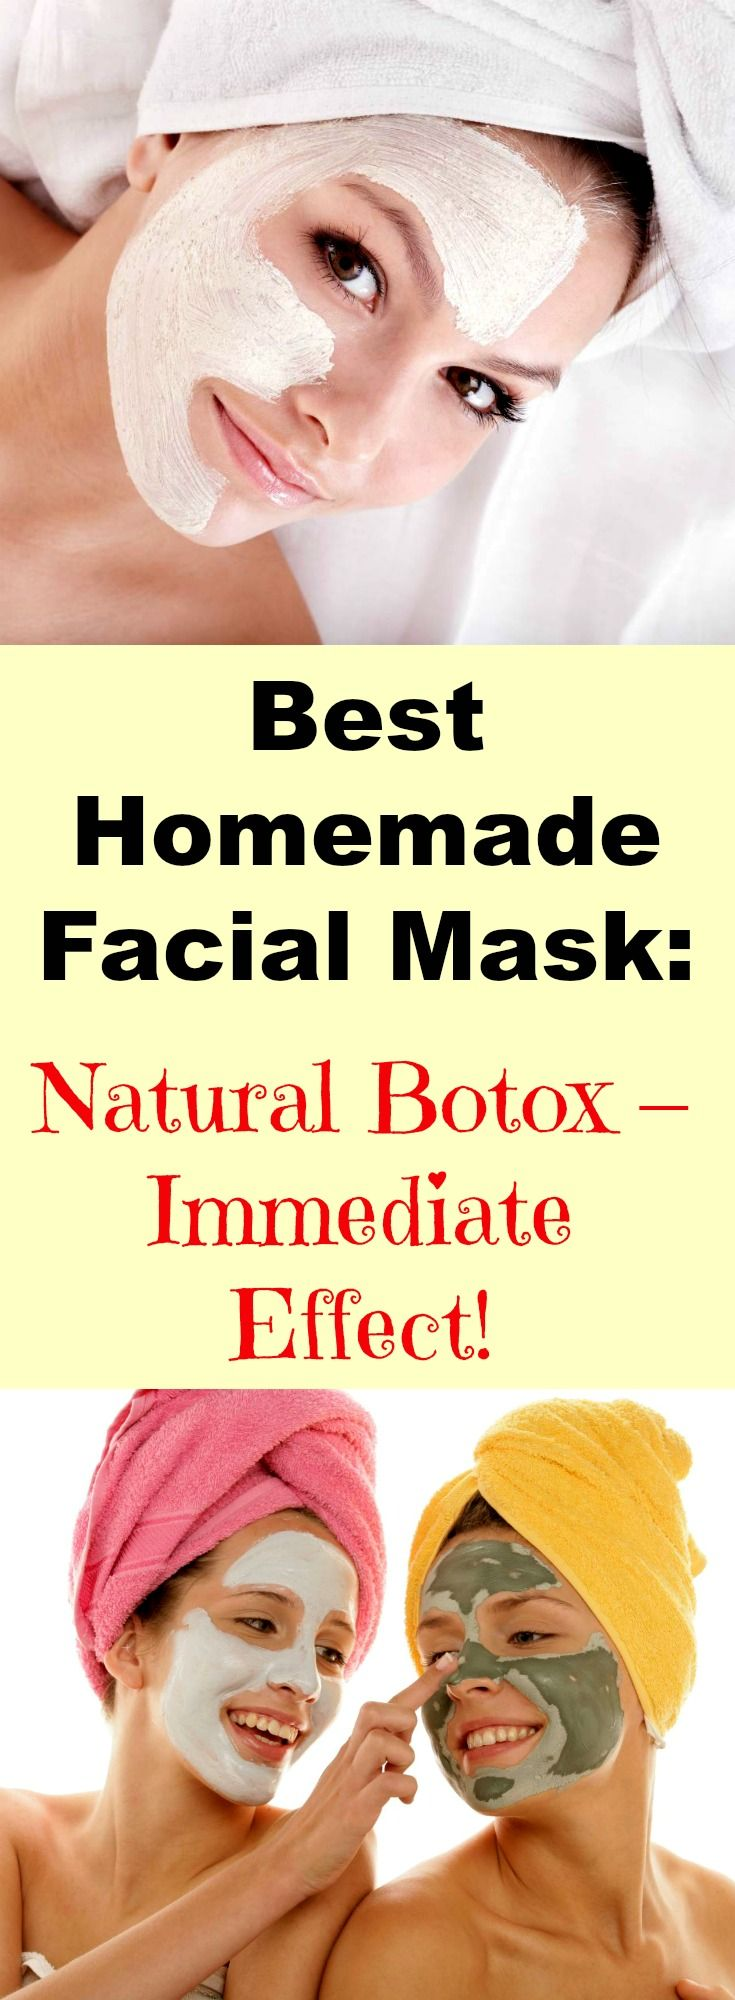 Best Homemade Facial Mask: Natural Botox – Immediate Effect!